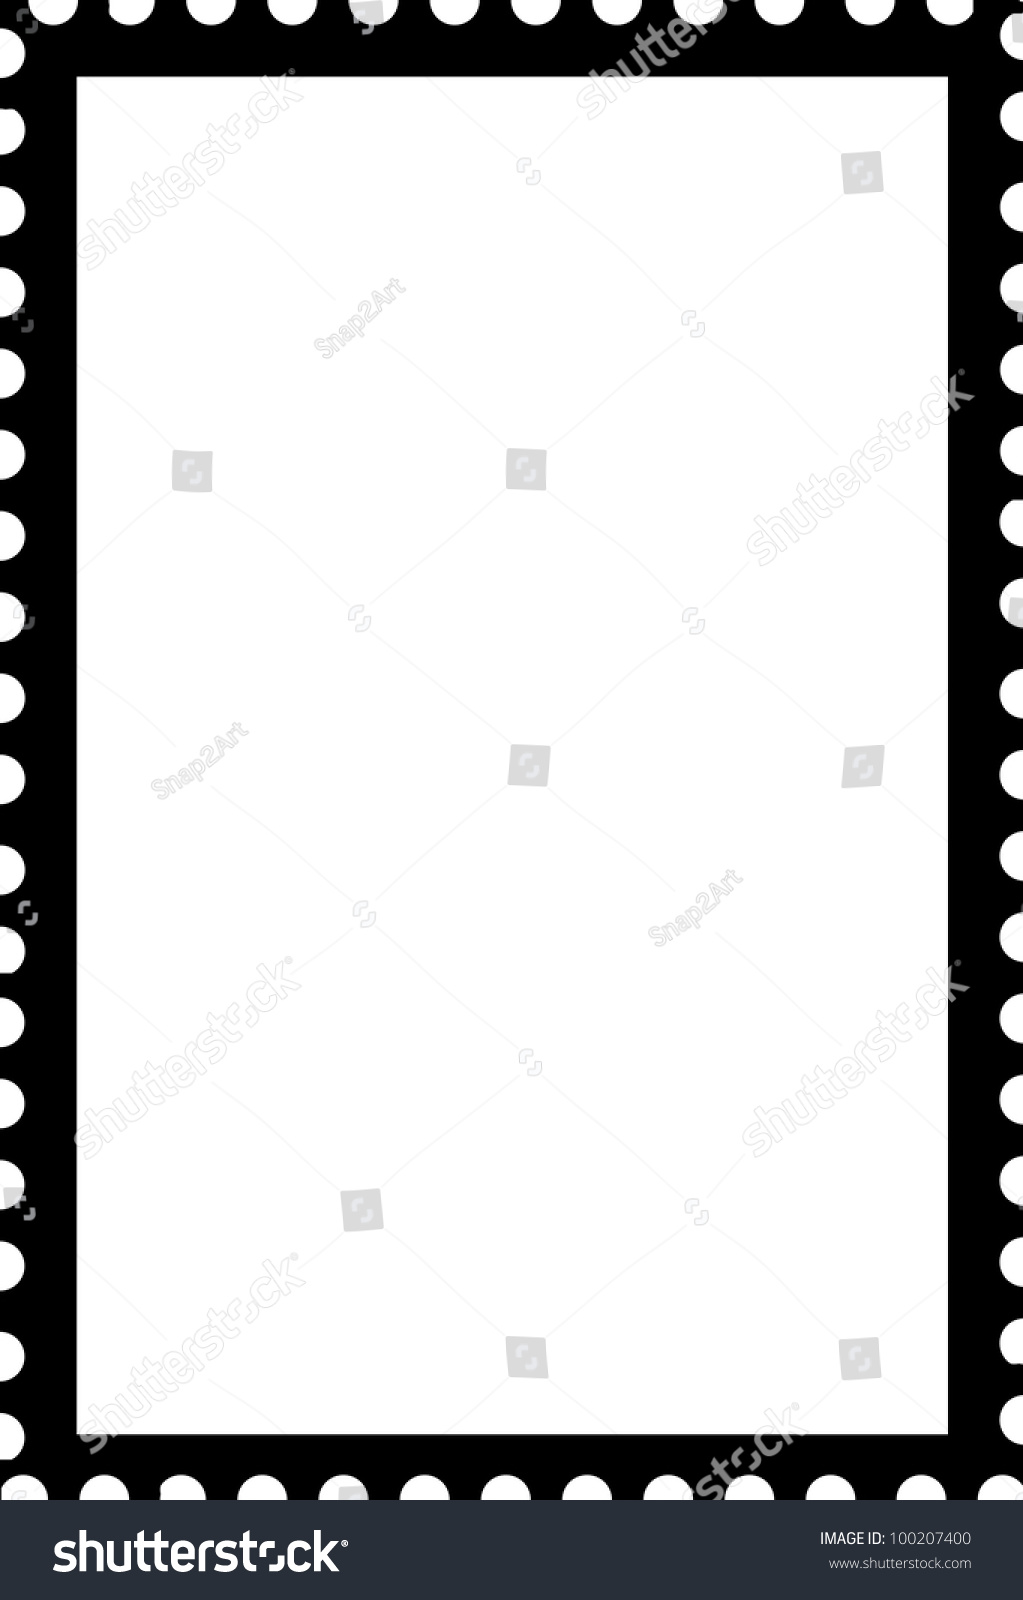 blank open postage edge outline portrait template black on white to create own stamp stock photo. Black Bedroom Furniture Sets. Home Design Ideas